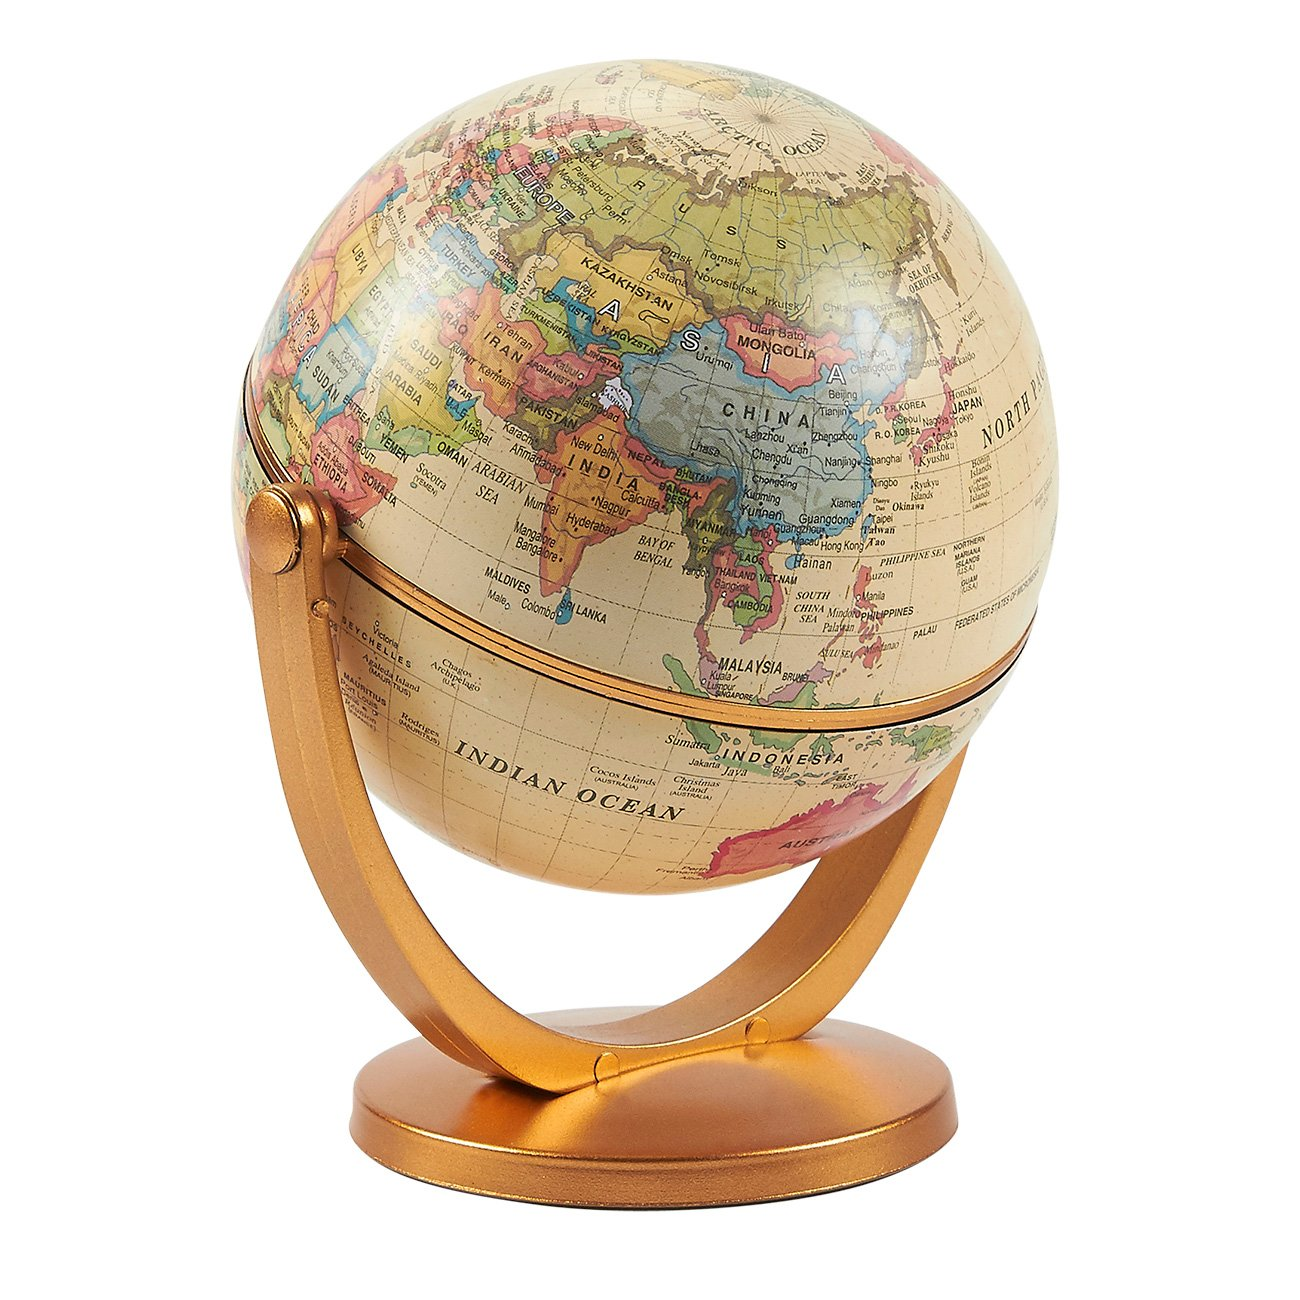 World Globe - 4-Inch Globe of the World with Stand, Spinning Rotating Globe for Kids, Geography Teachers, Parents as Home, Office Desktop Decoration, Educational Tool, Yellow, 5 Inches Tall Juvale